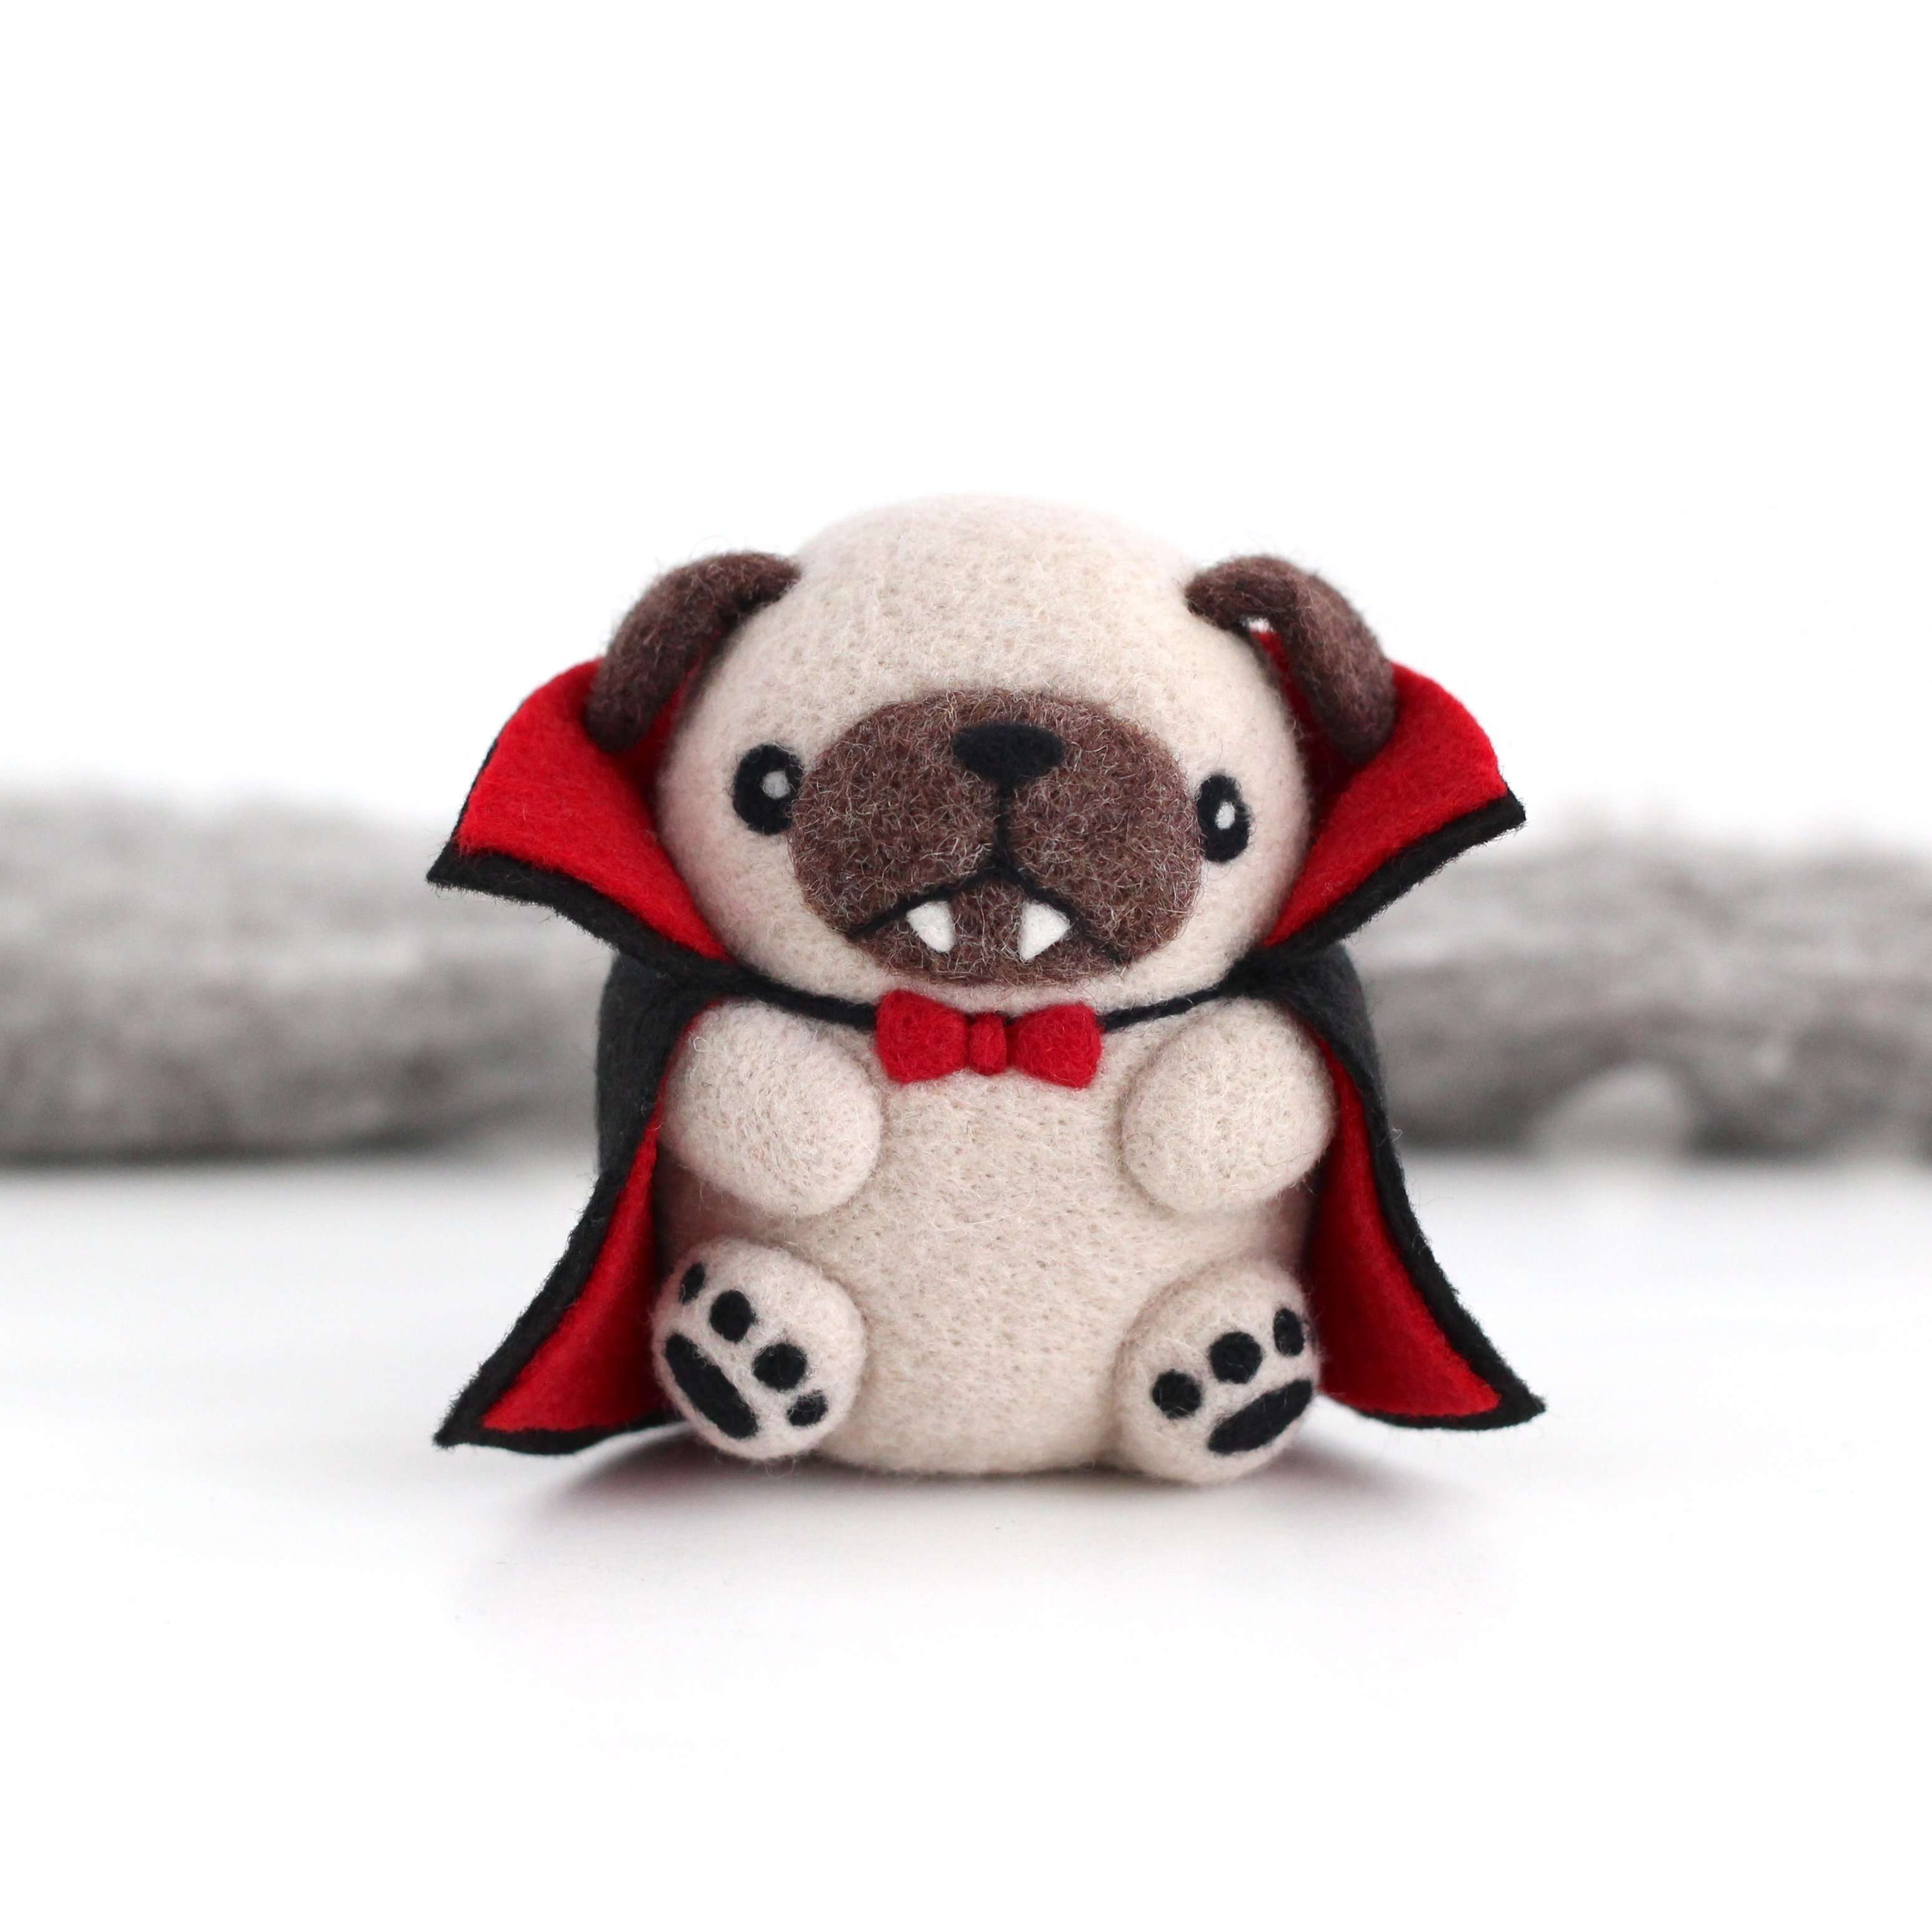 Needle Felted Vampug, the Vampire Pug by Wild Whimsy Woolies